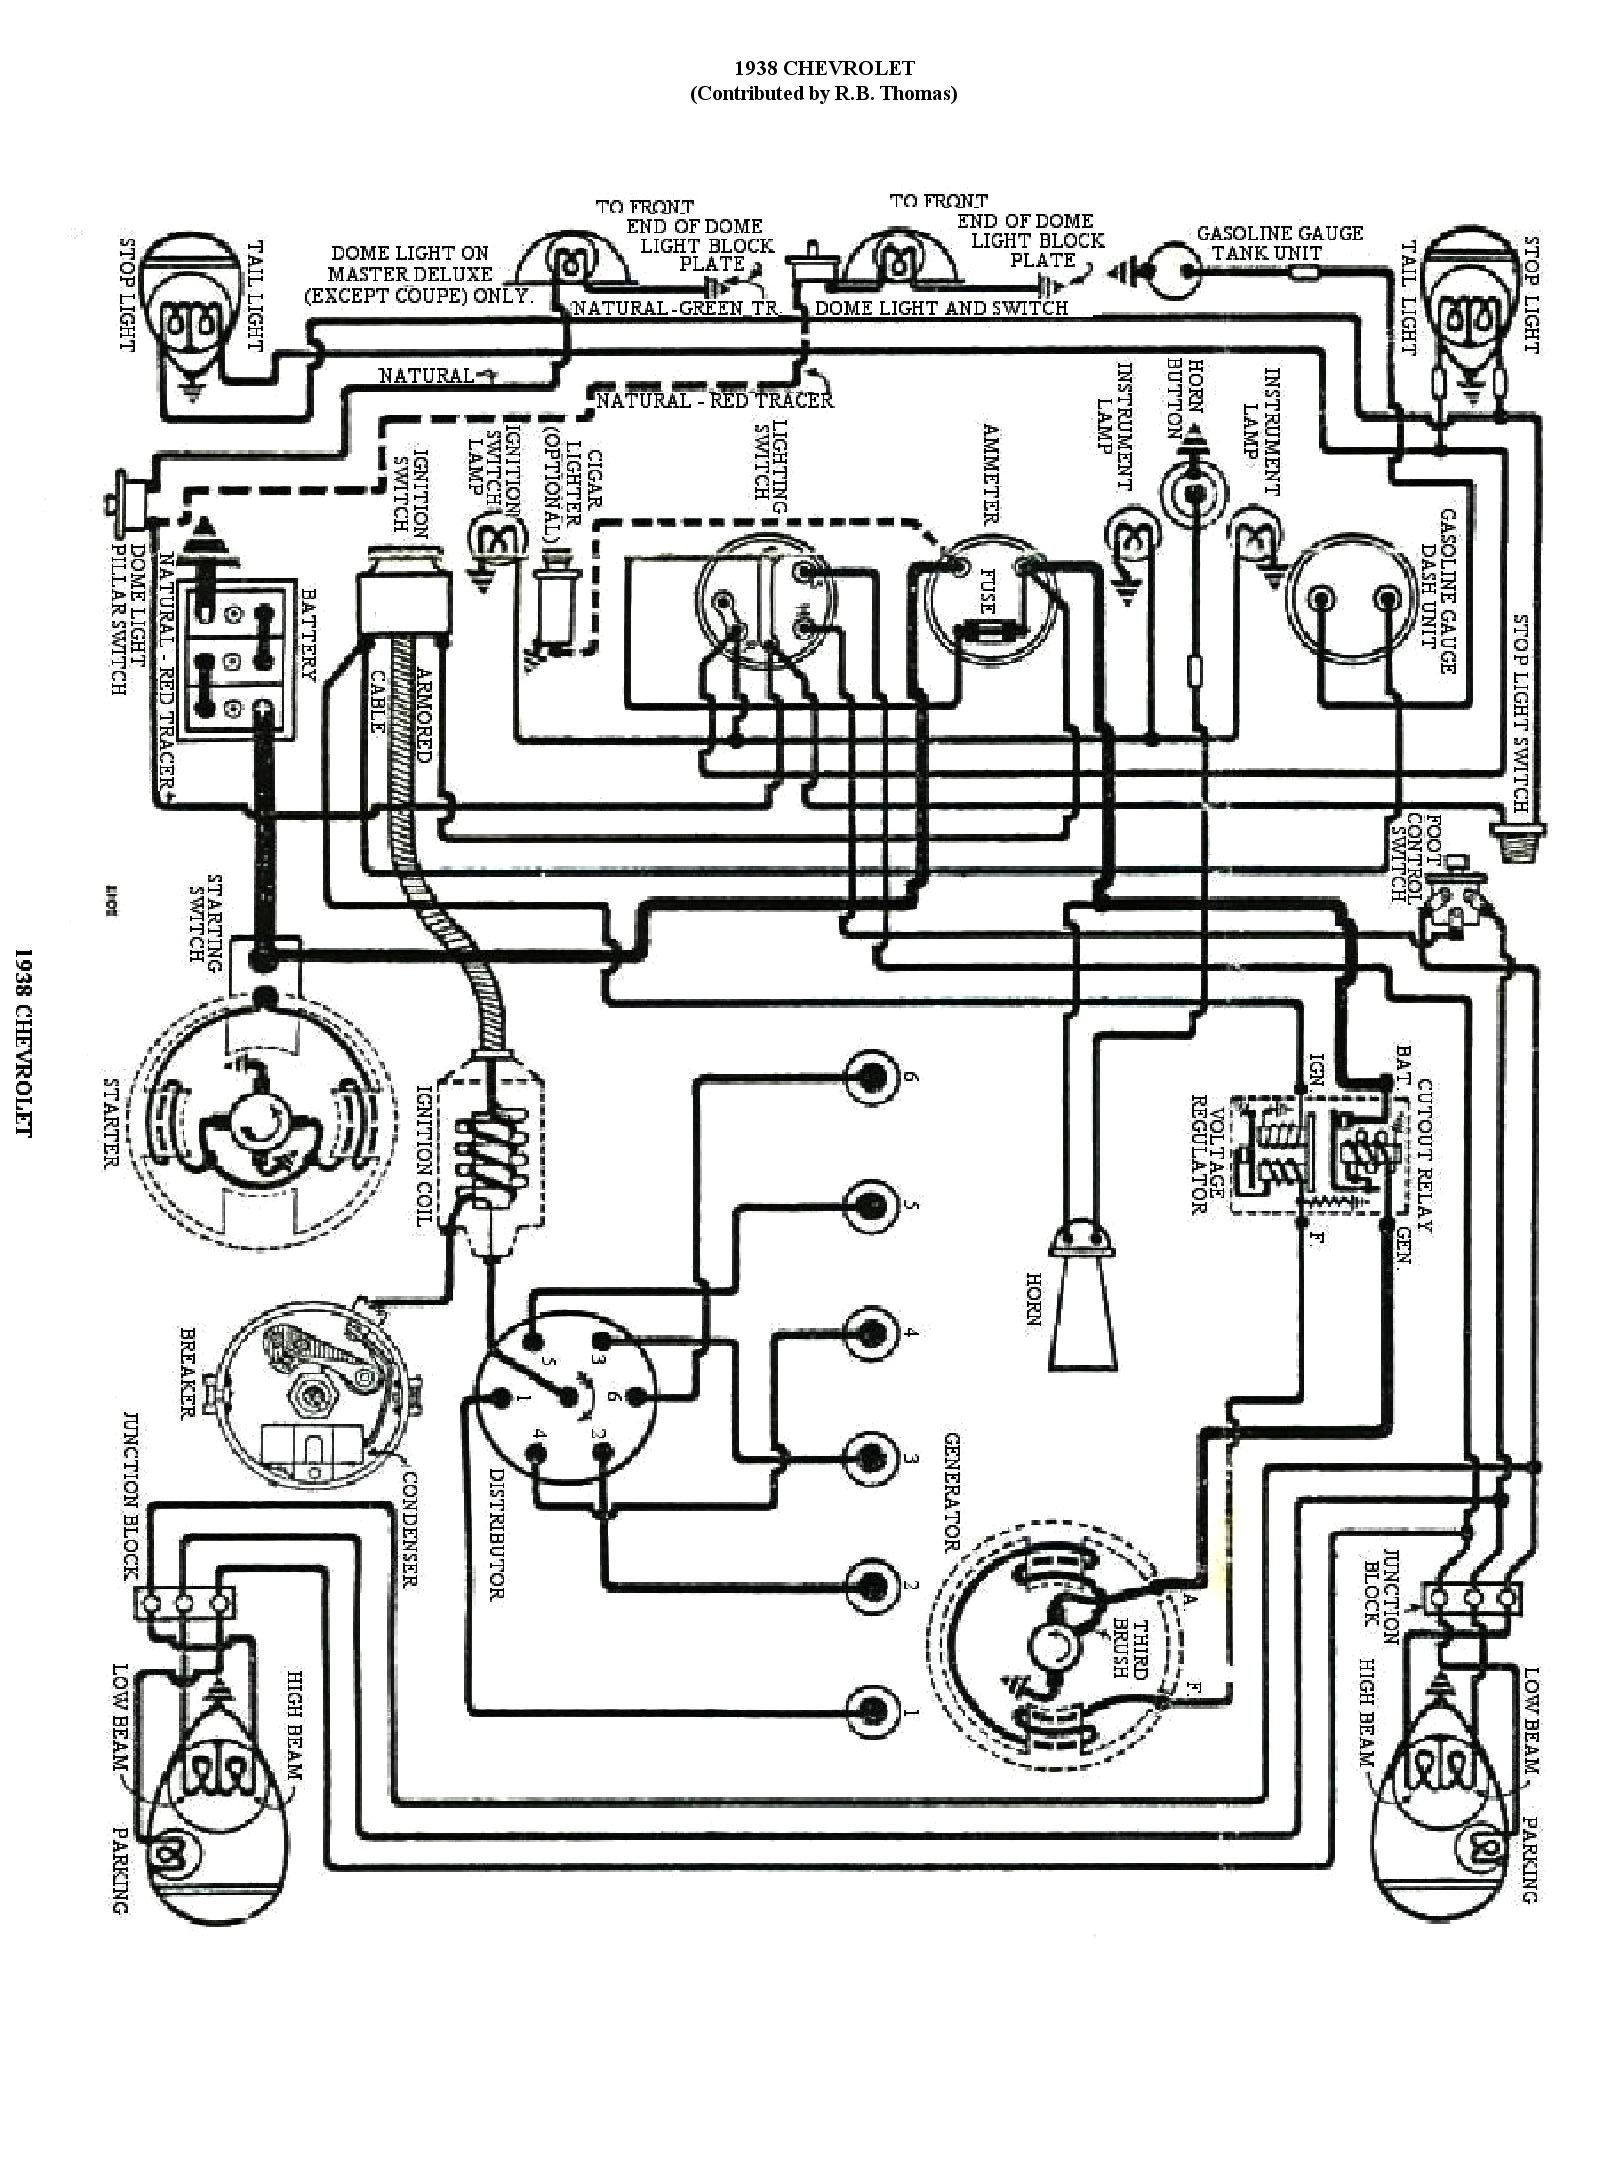 1953 buick wiring diagram 1953 wiring diagrams description 38wiring buick wiring diagram